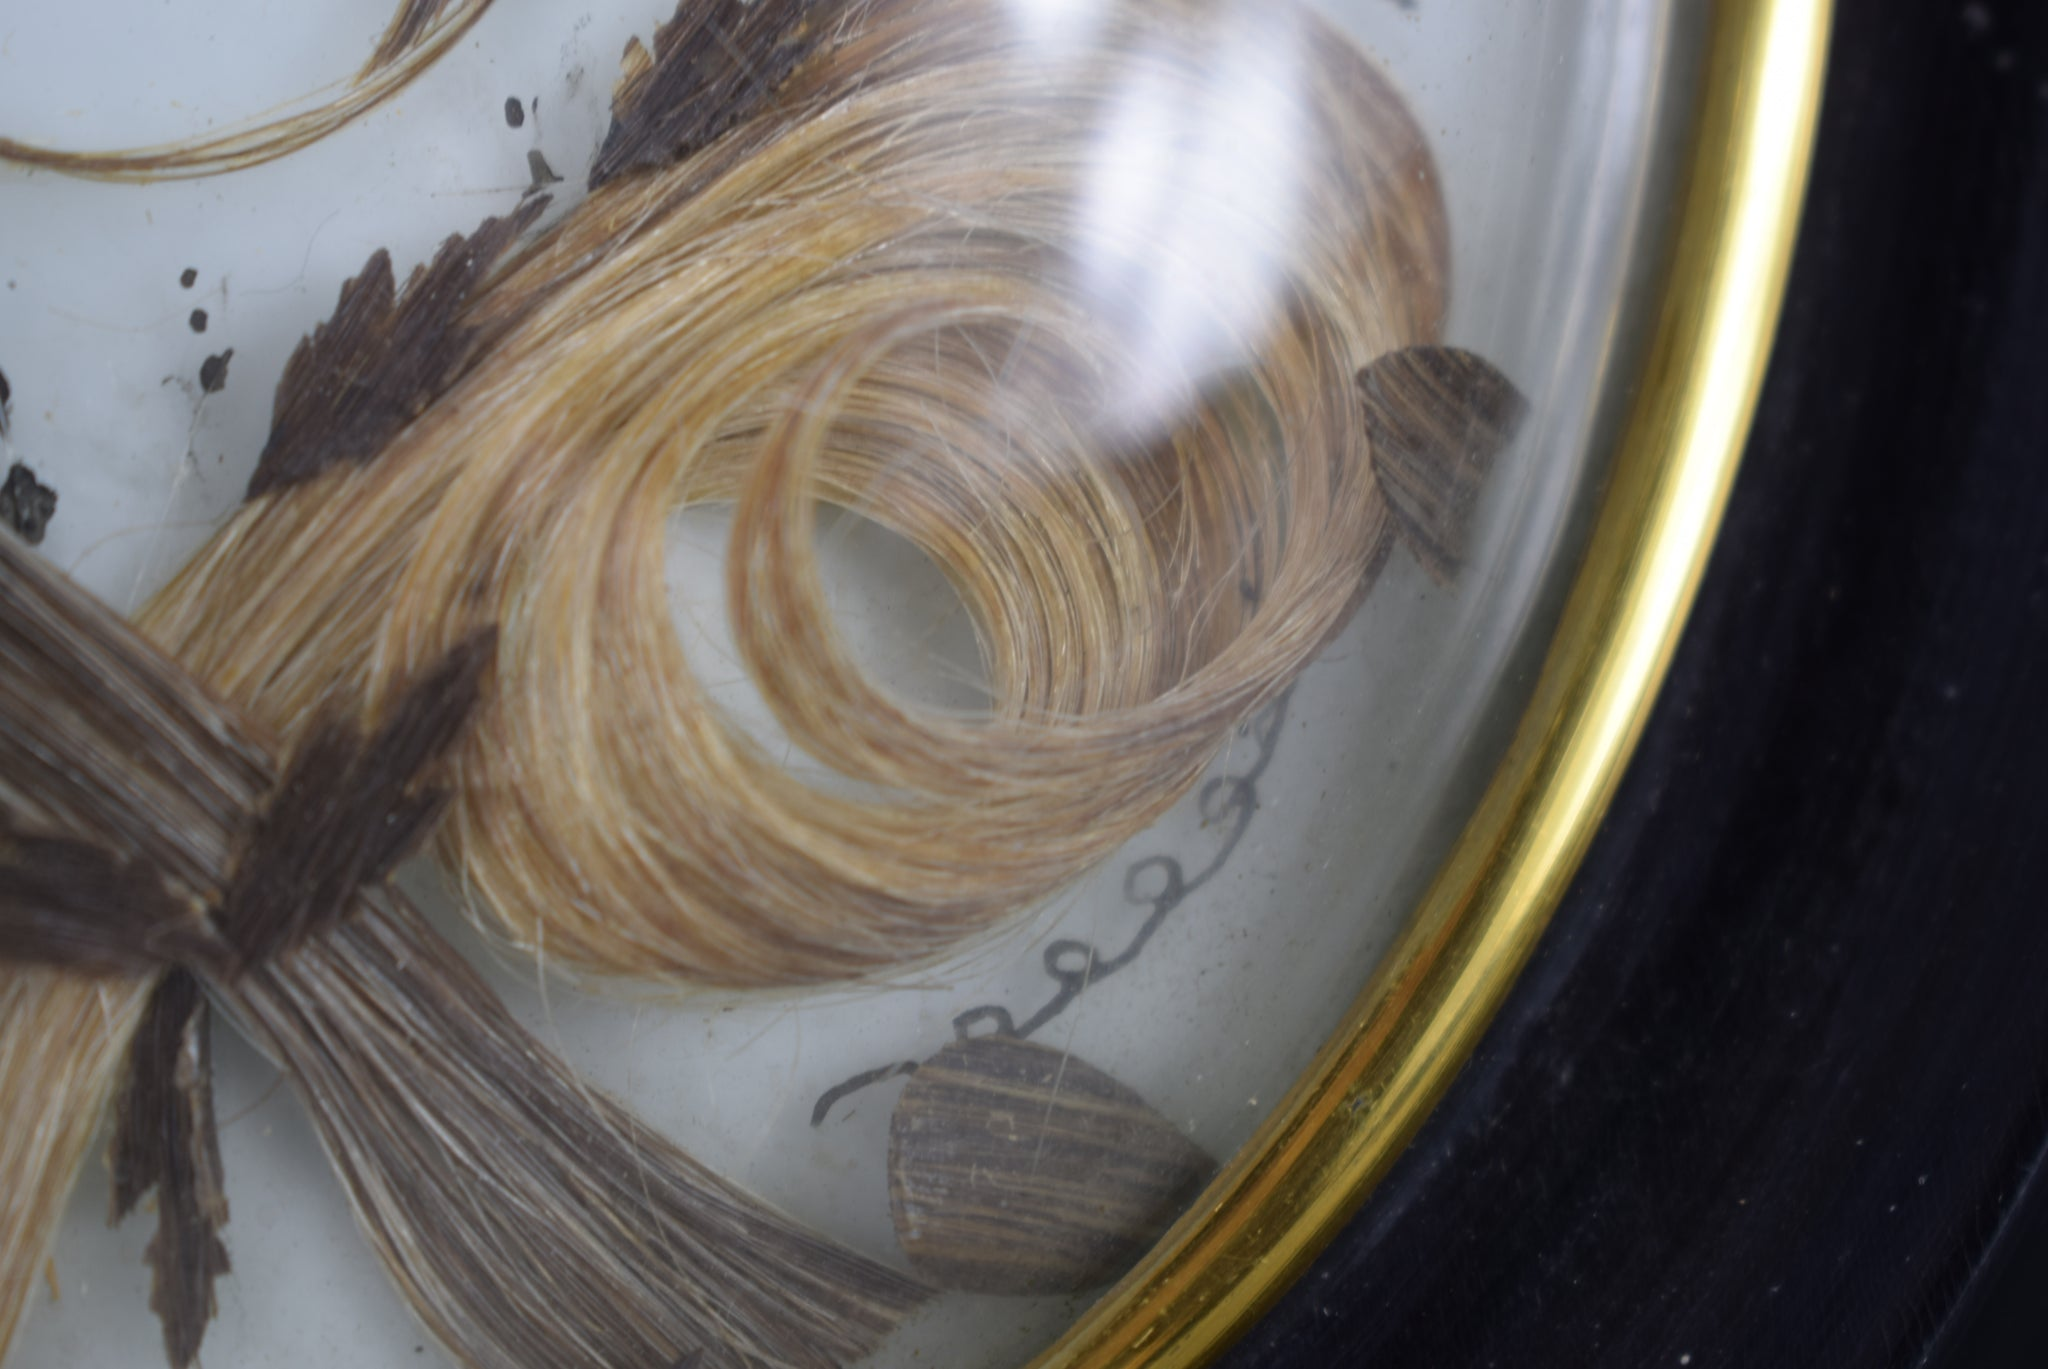 Hair Art Memento M - Charmantiques